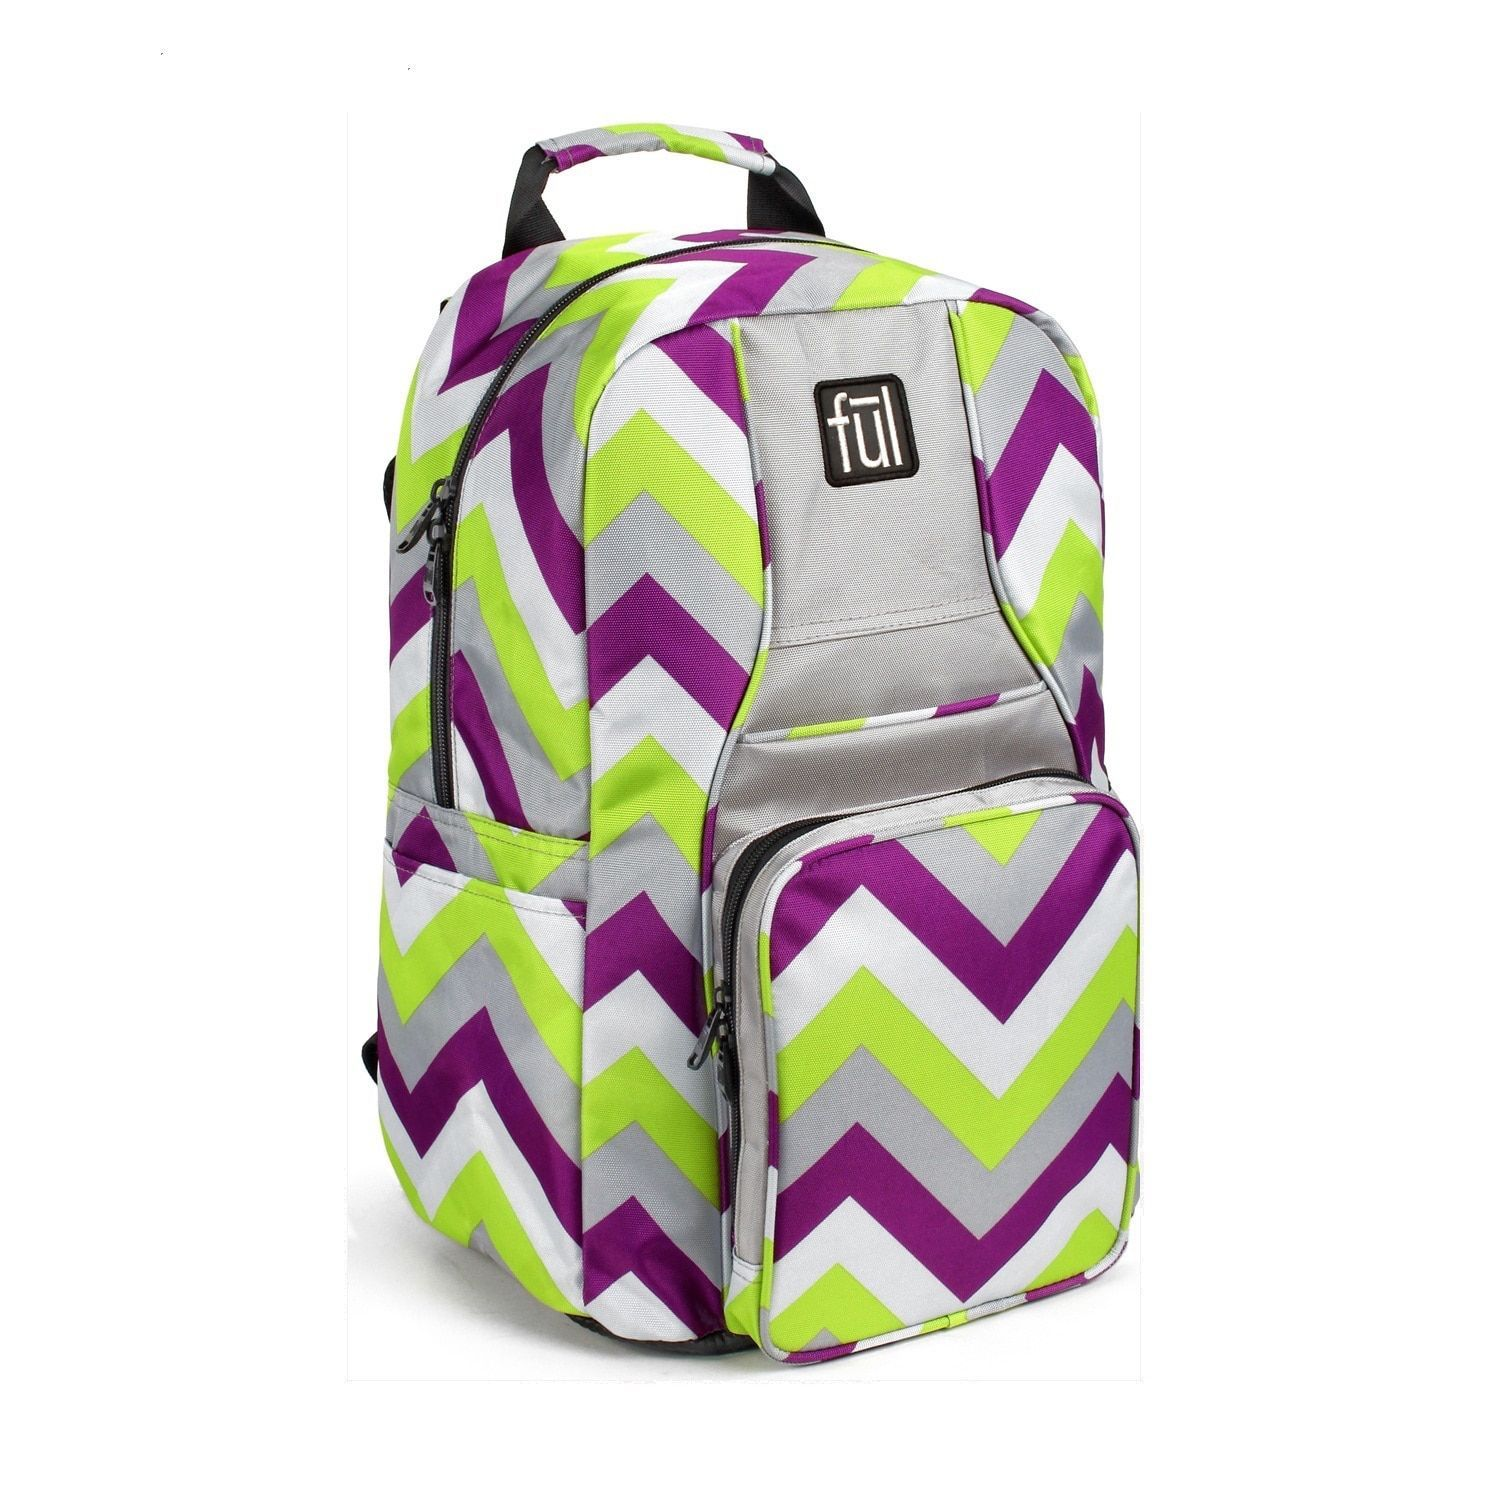 Paisley Jacks Outlet School Backpack and Pencil Case Set